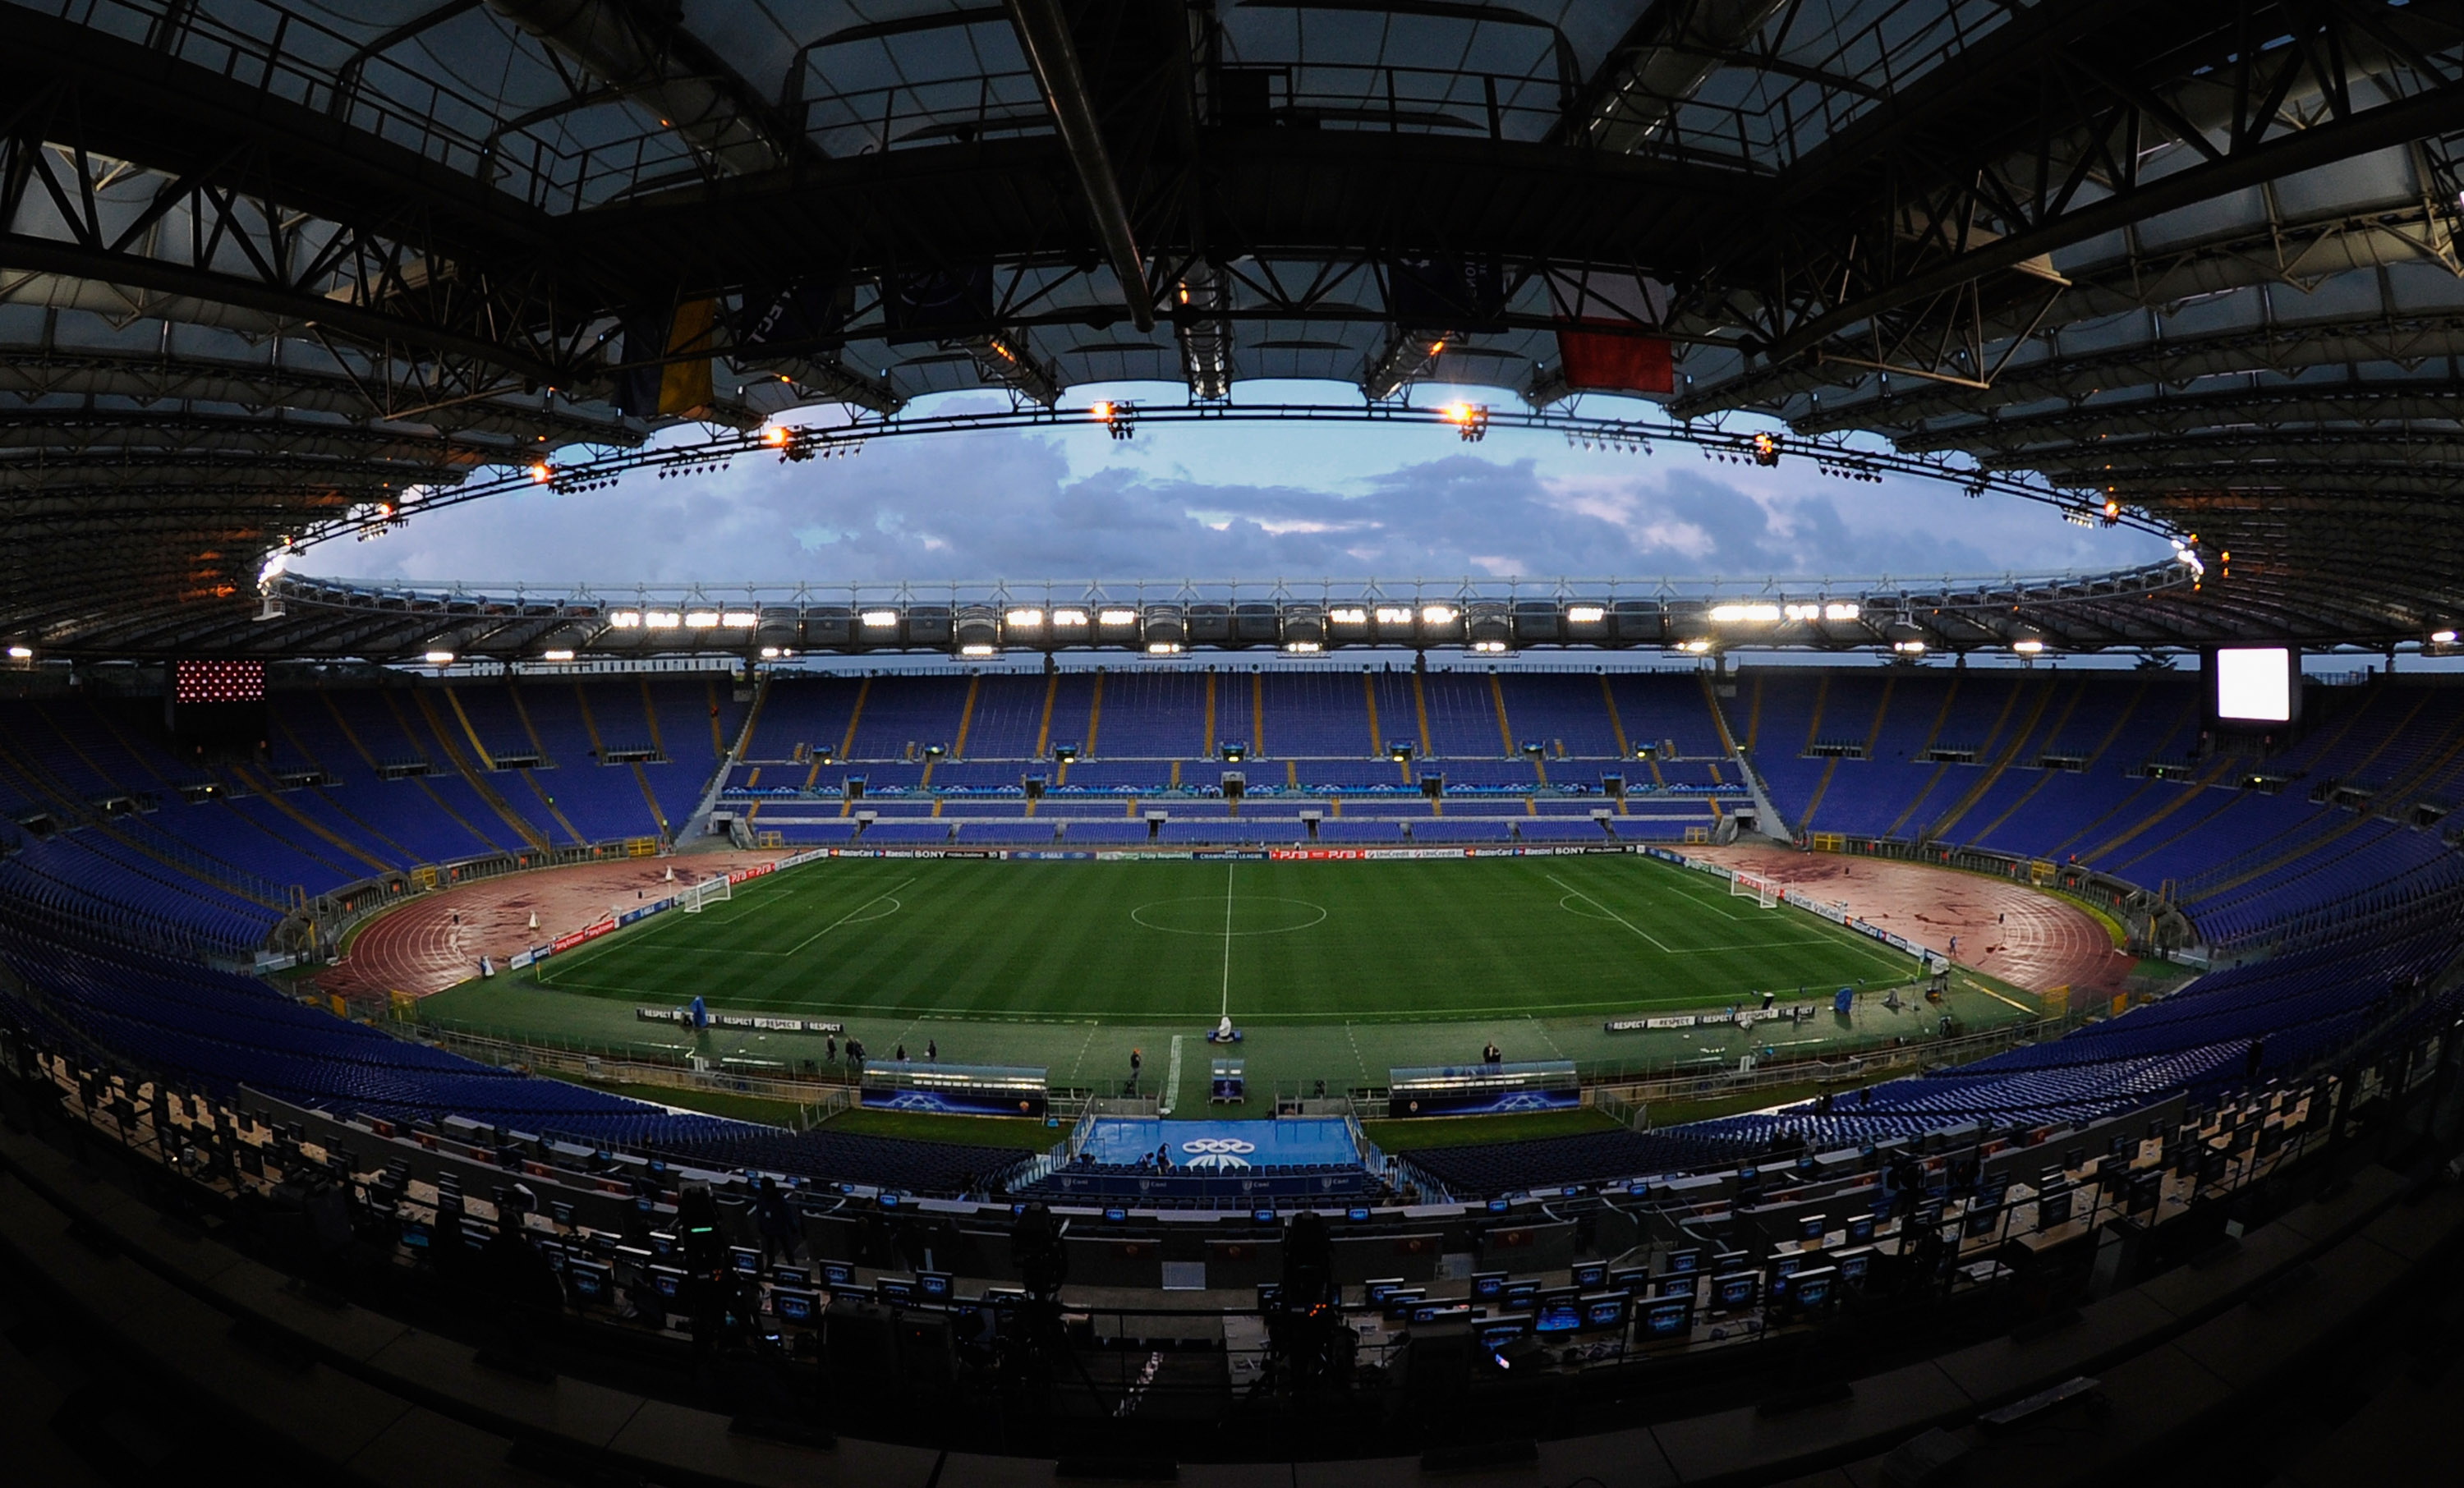 4k Sports Car Wallpaper Stadio Olimpico Stage For Fierce Duel Quot Derby Della